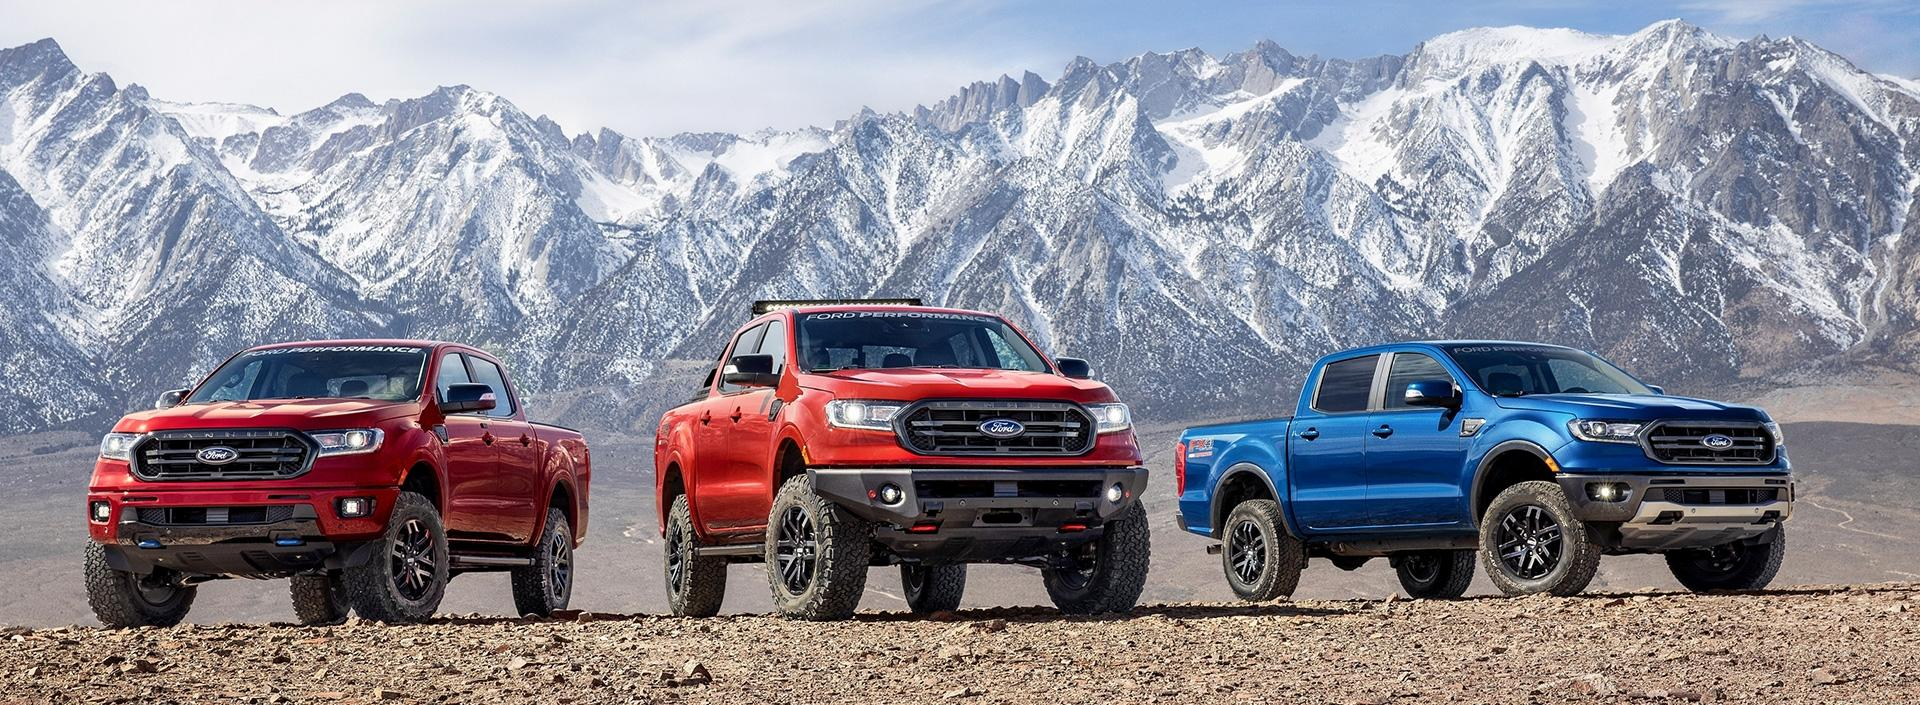 2021 Ford Ranger | Southern California Ford Dealers